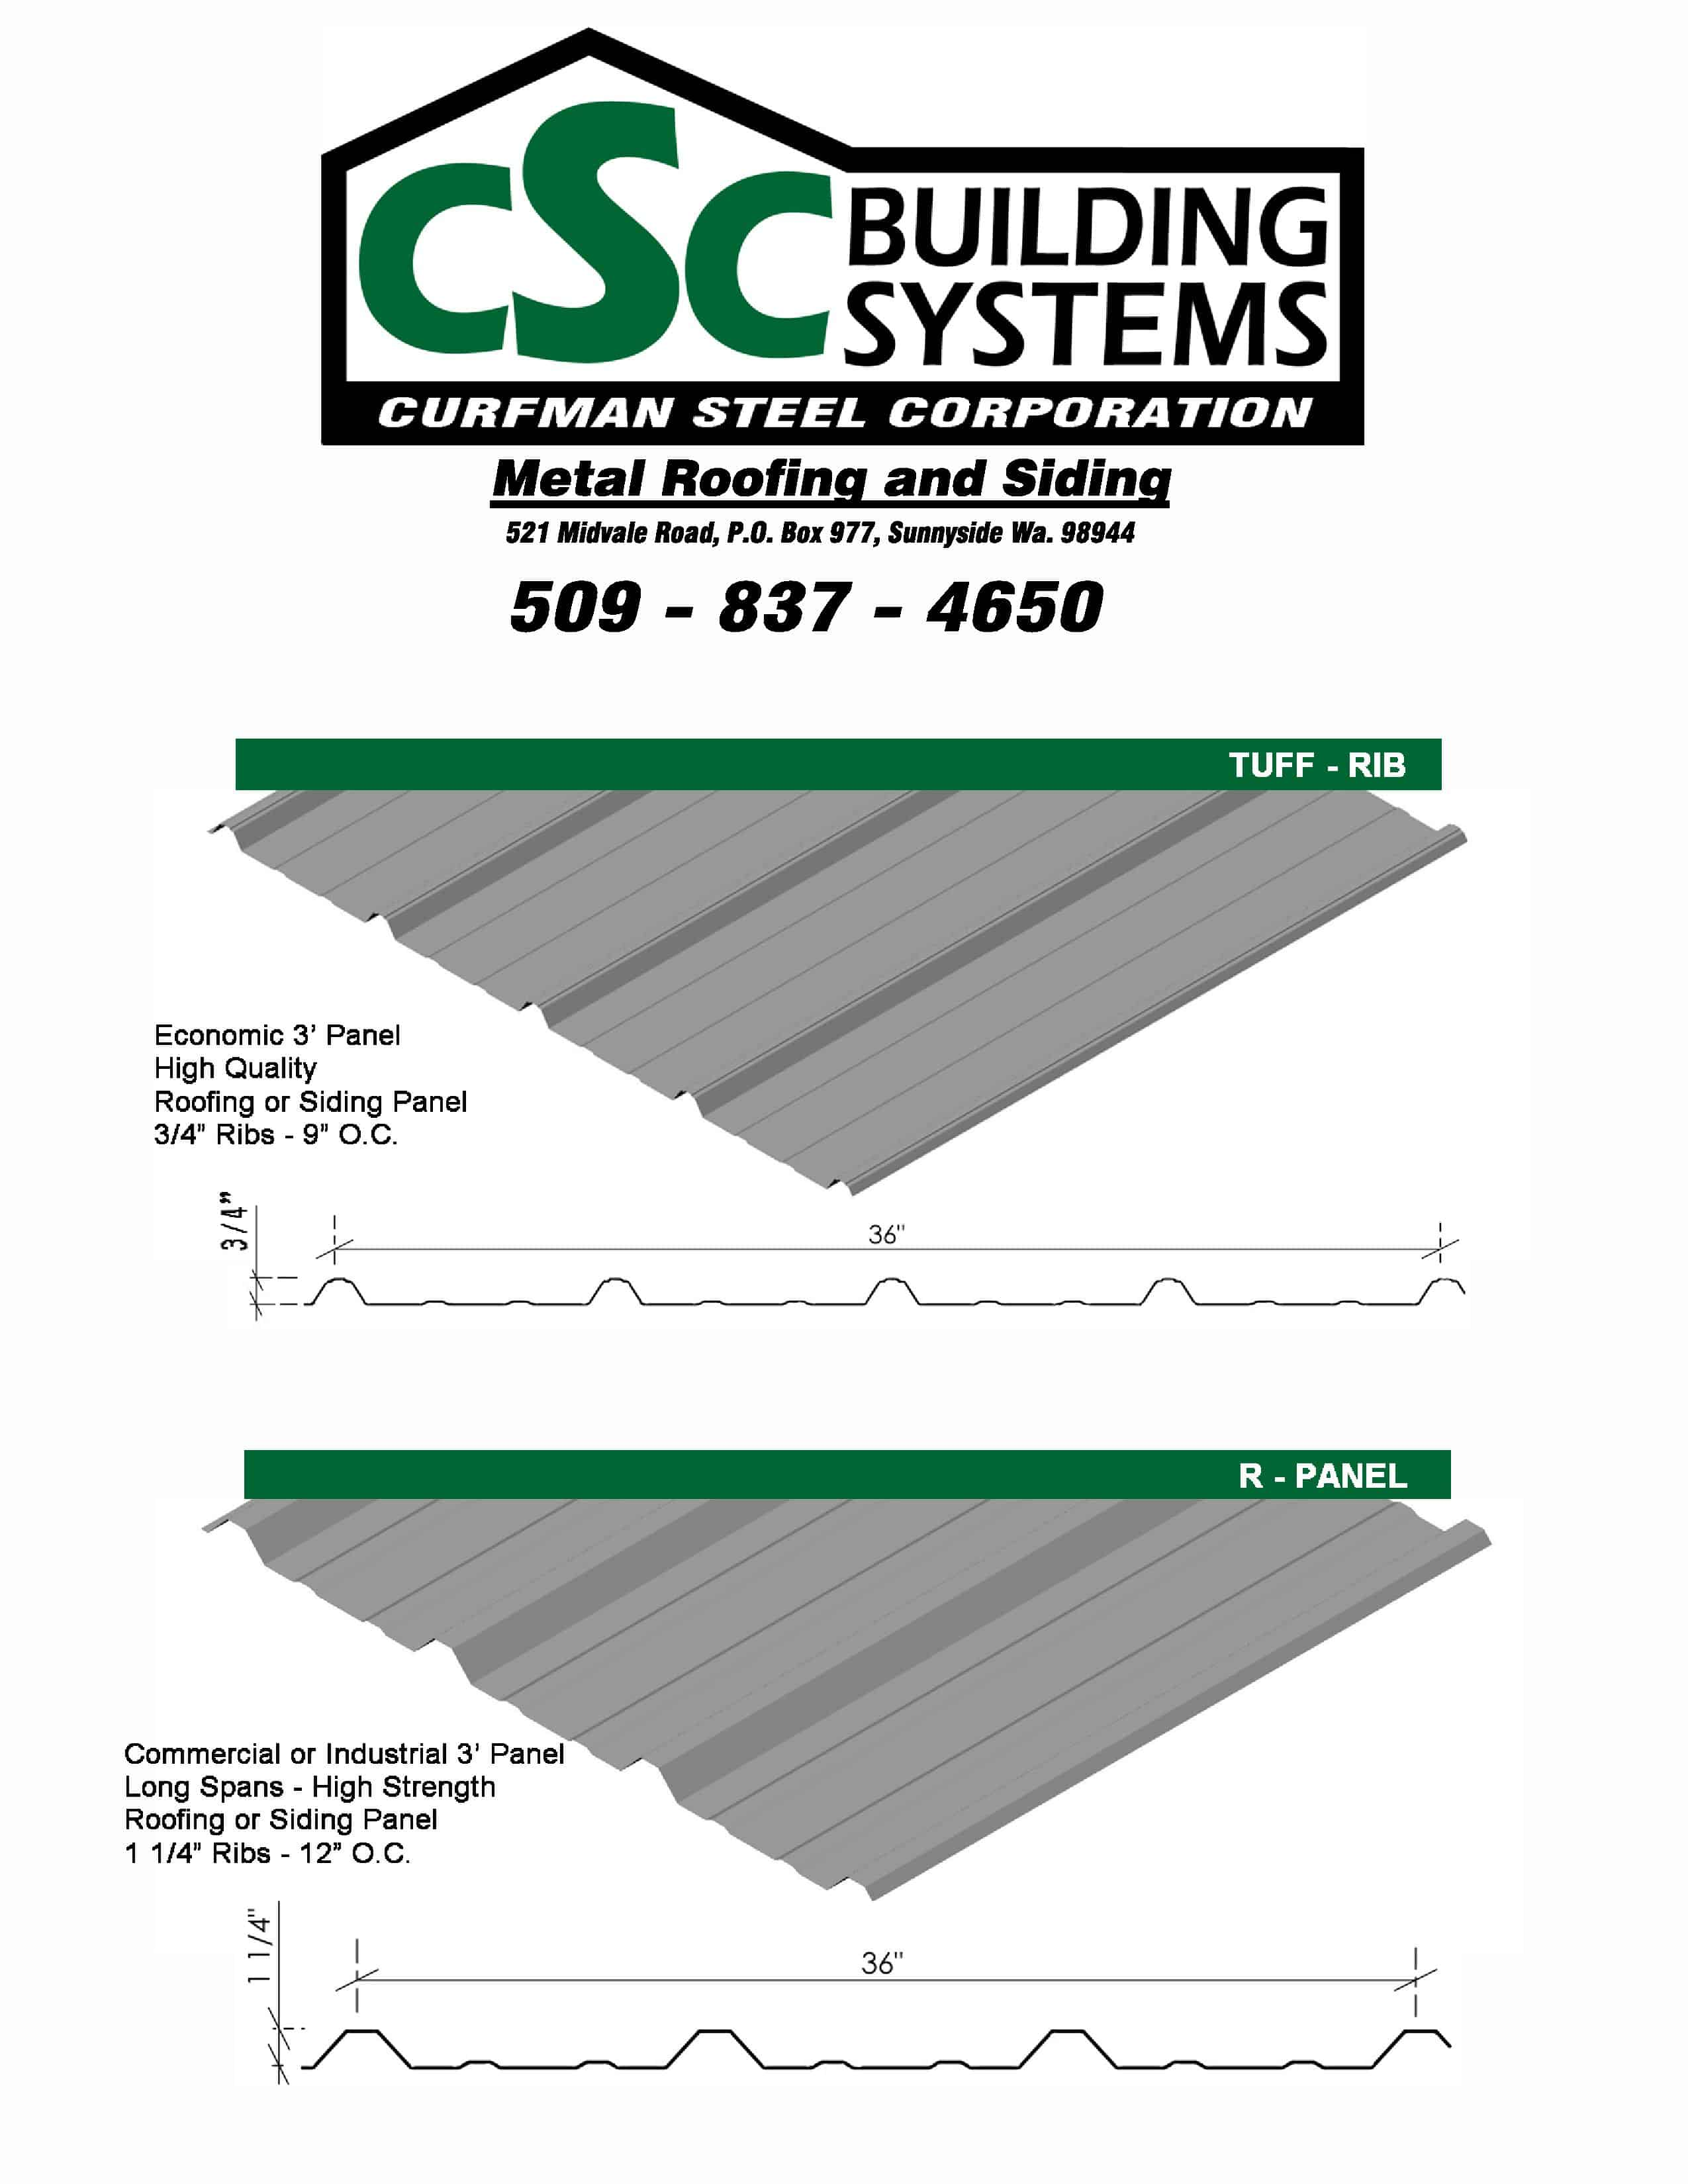 Csc Panels Tuff R-page-001